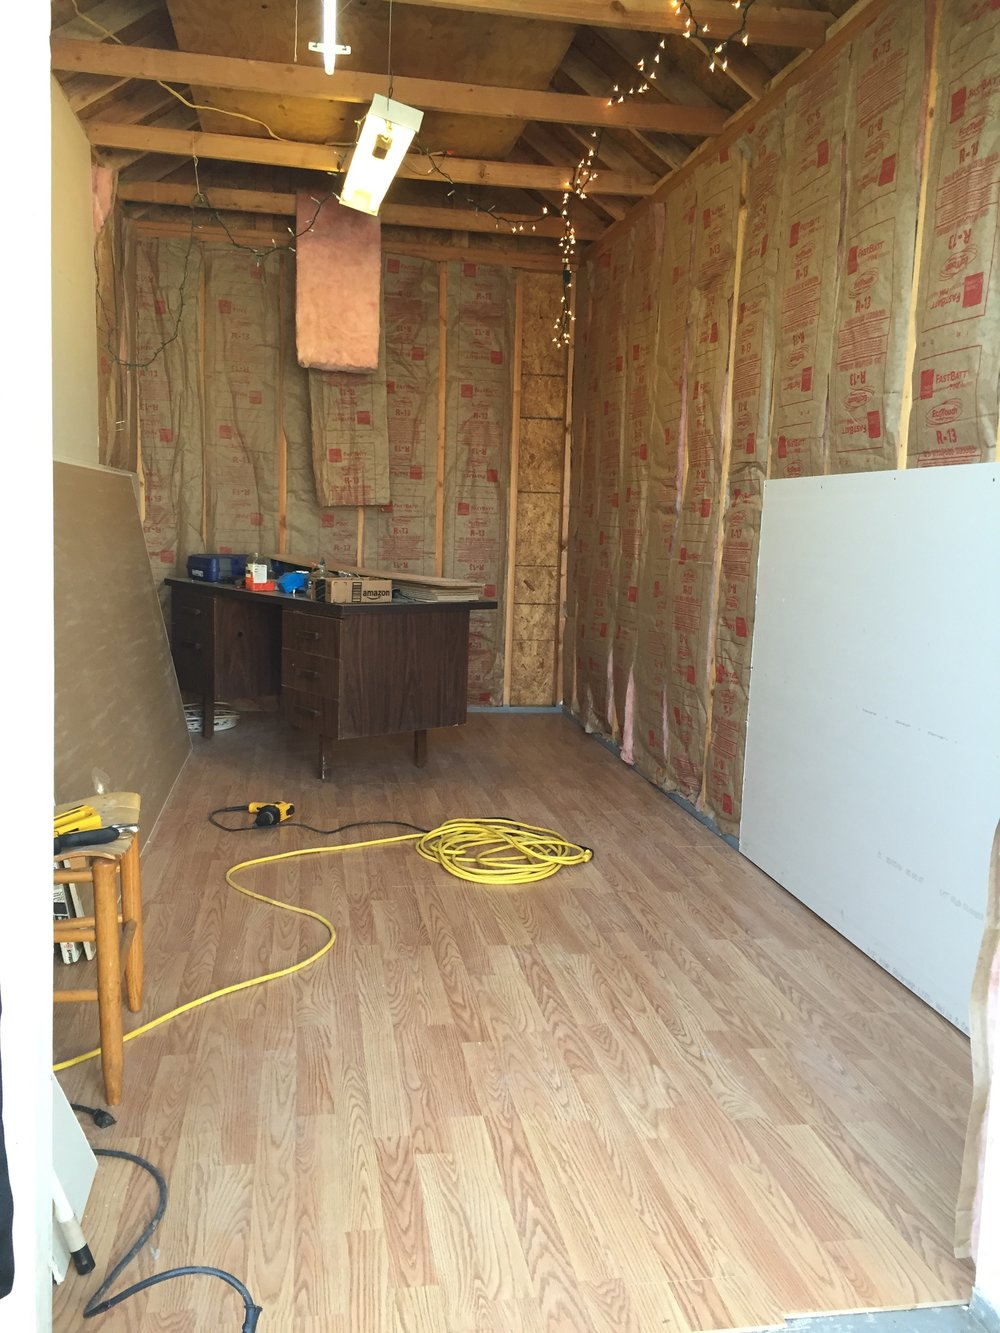 Insulation and drywall process.